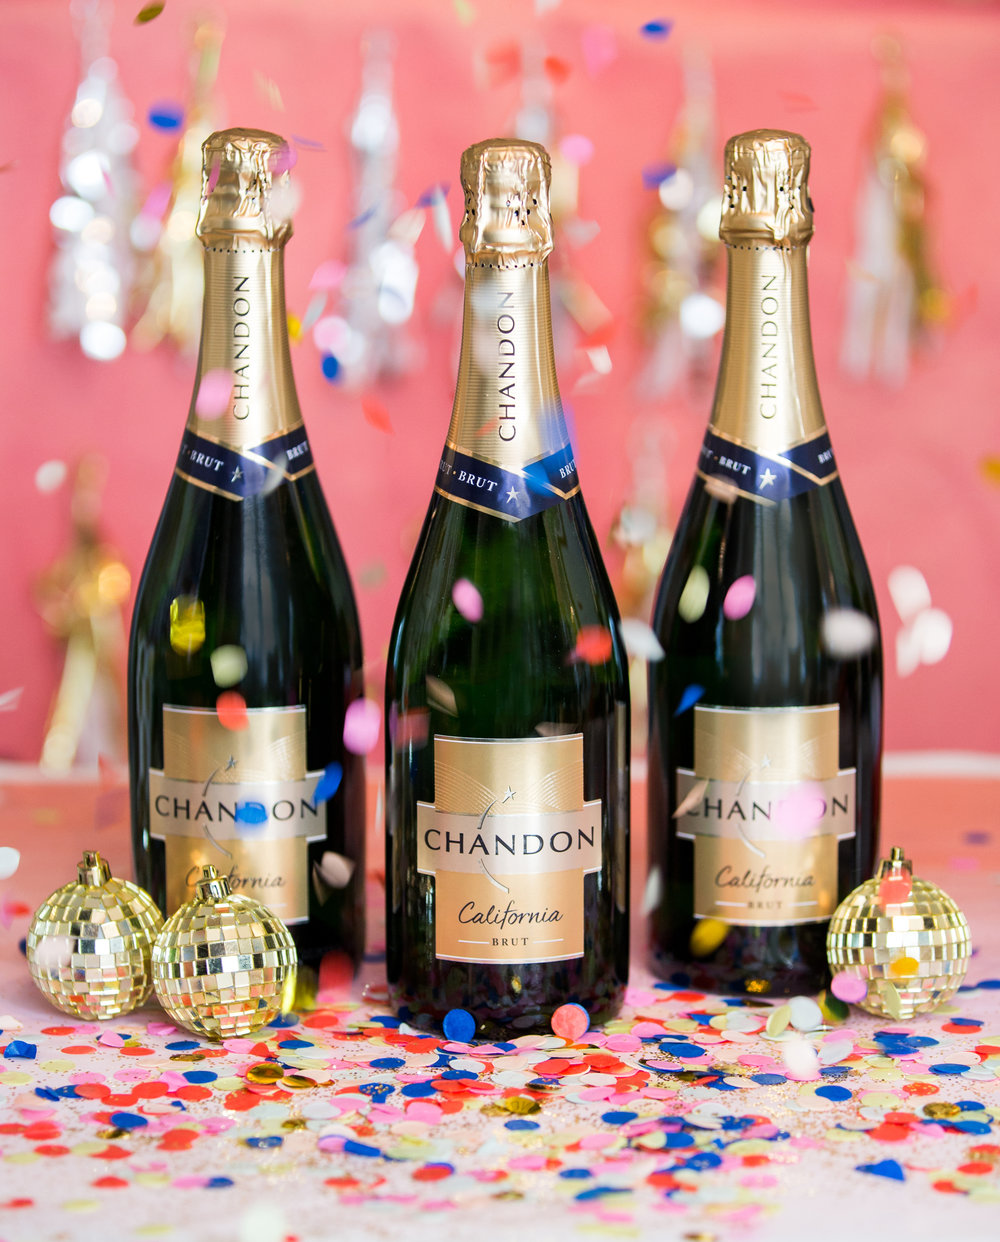 All our ladies will be delicious Chandon sparkling wine all night long! If you haven't tried Chandon yet, YOU WILL notice the difference. Trust us.